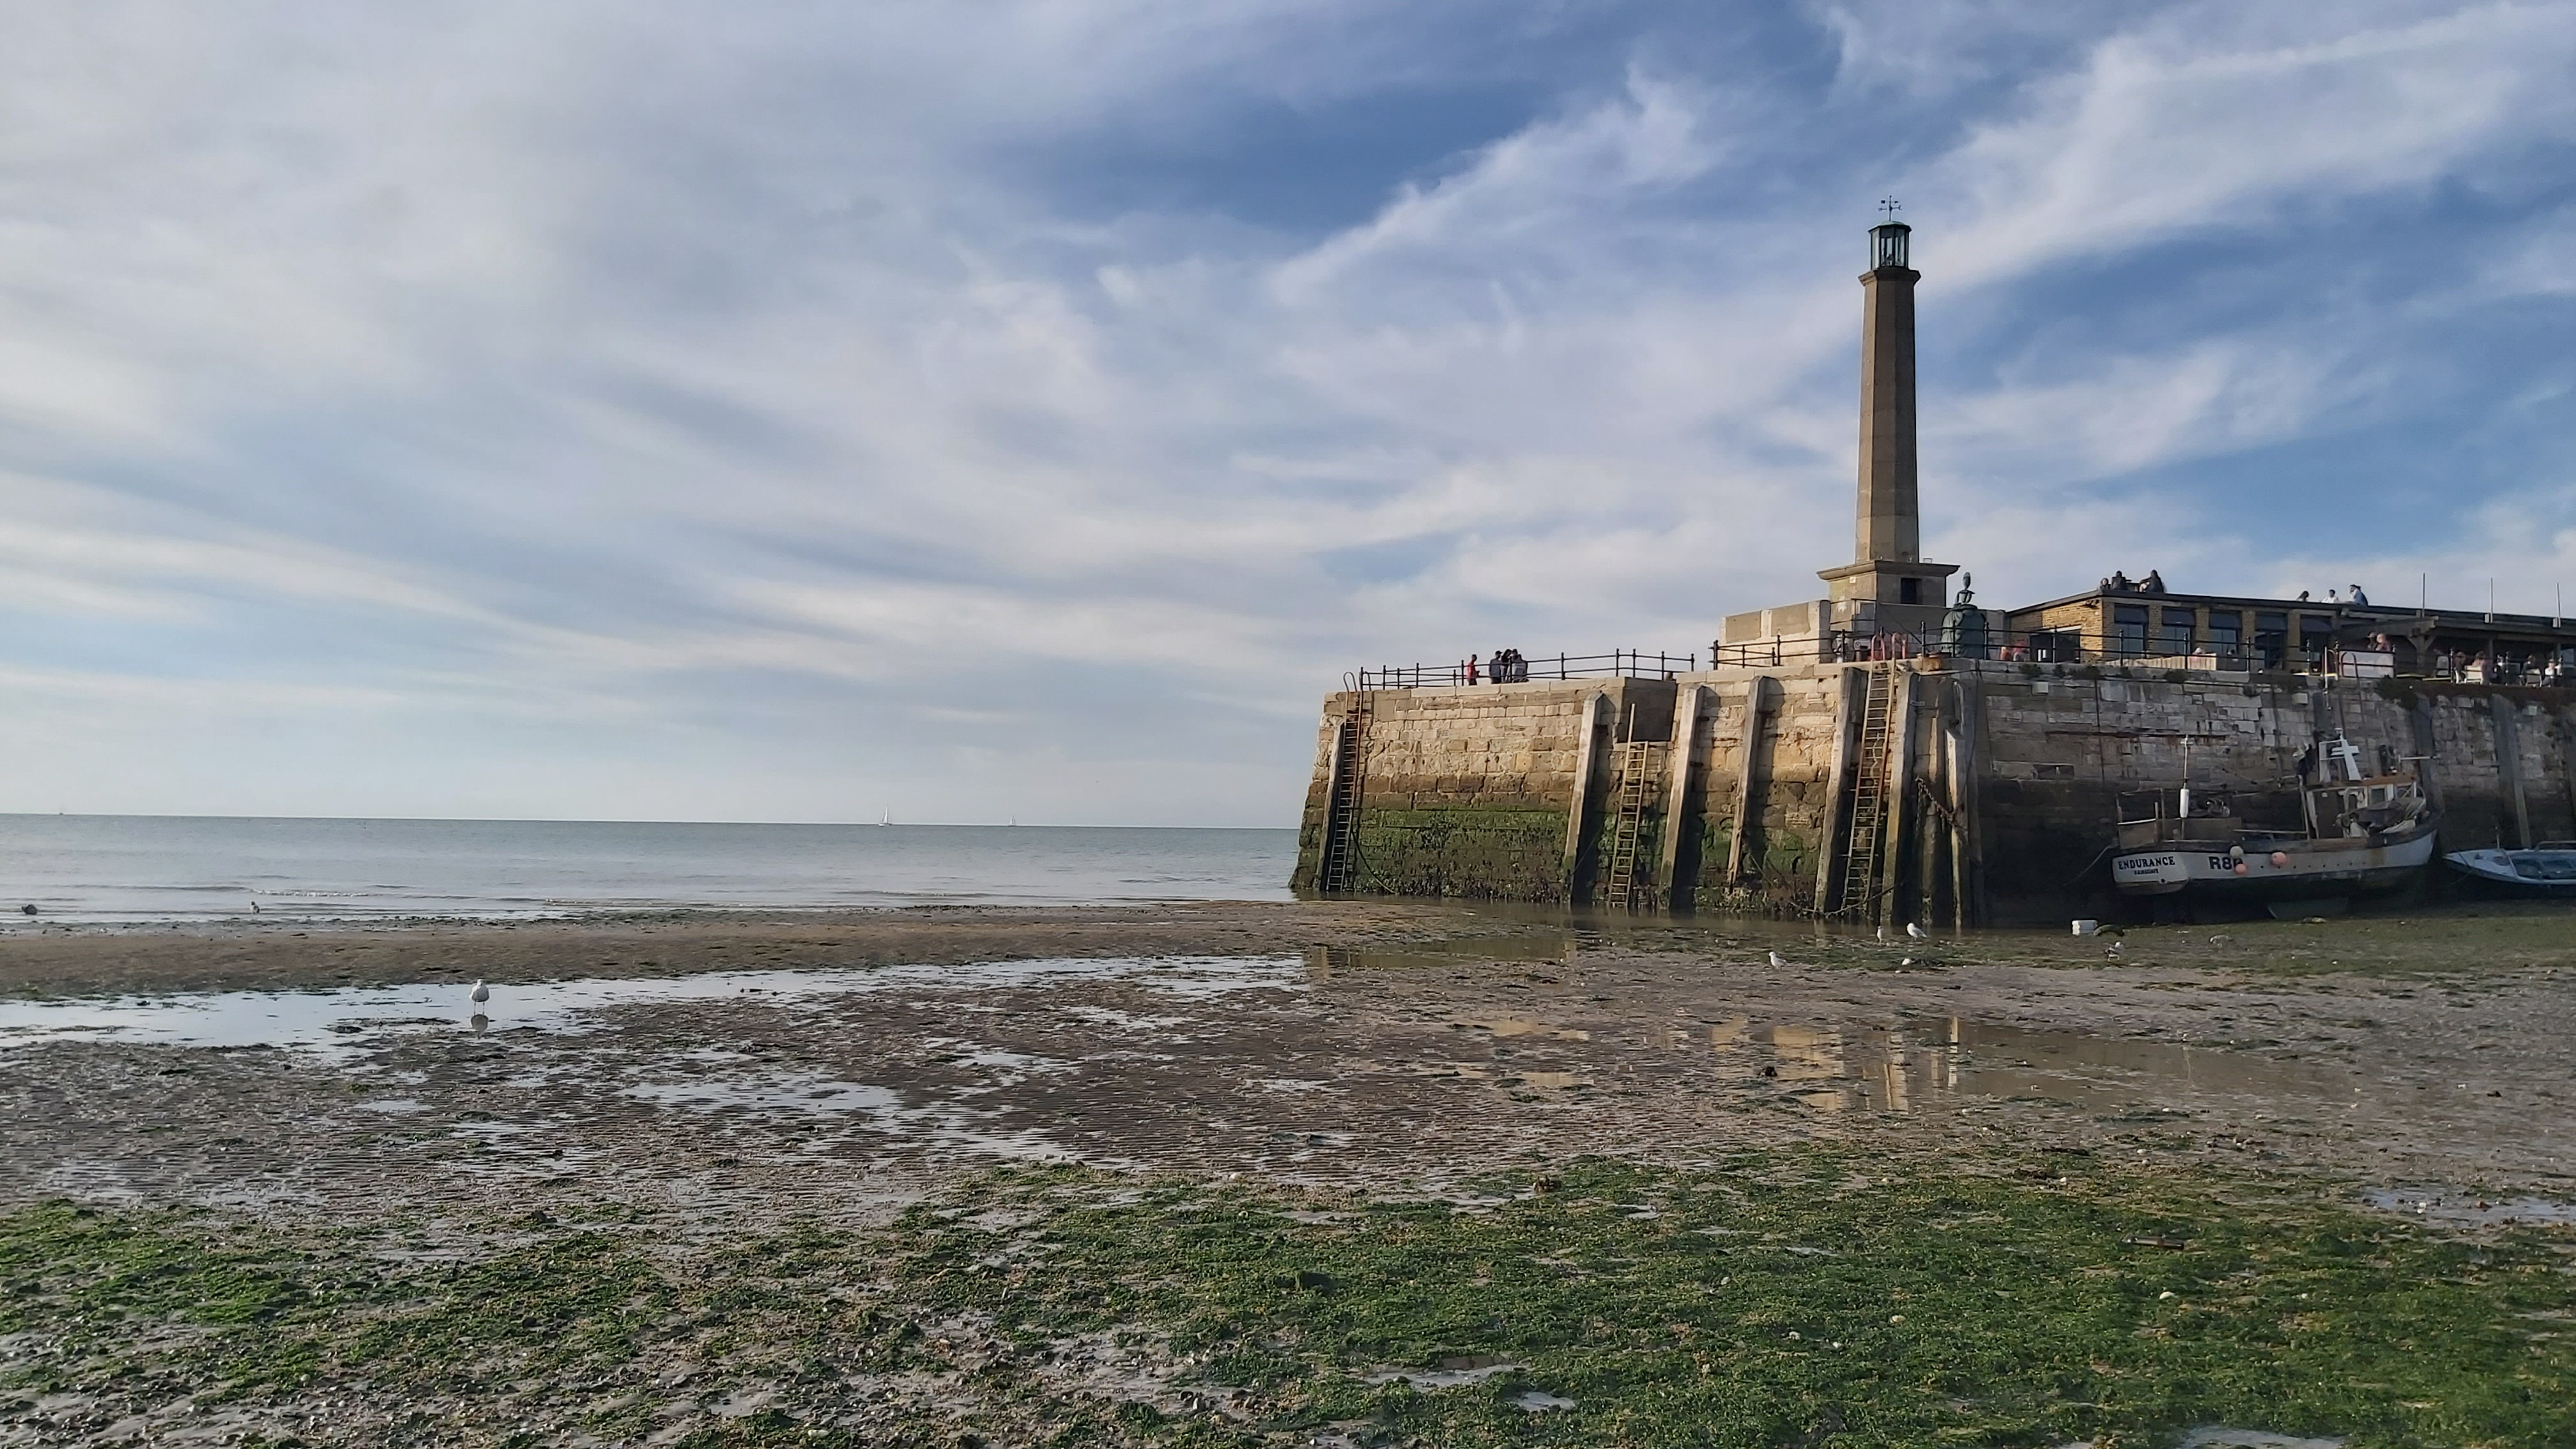 The lighthouse in Margate with low tide